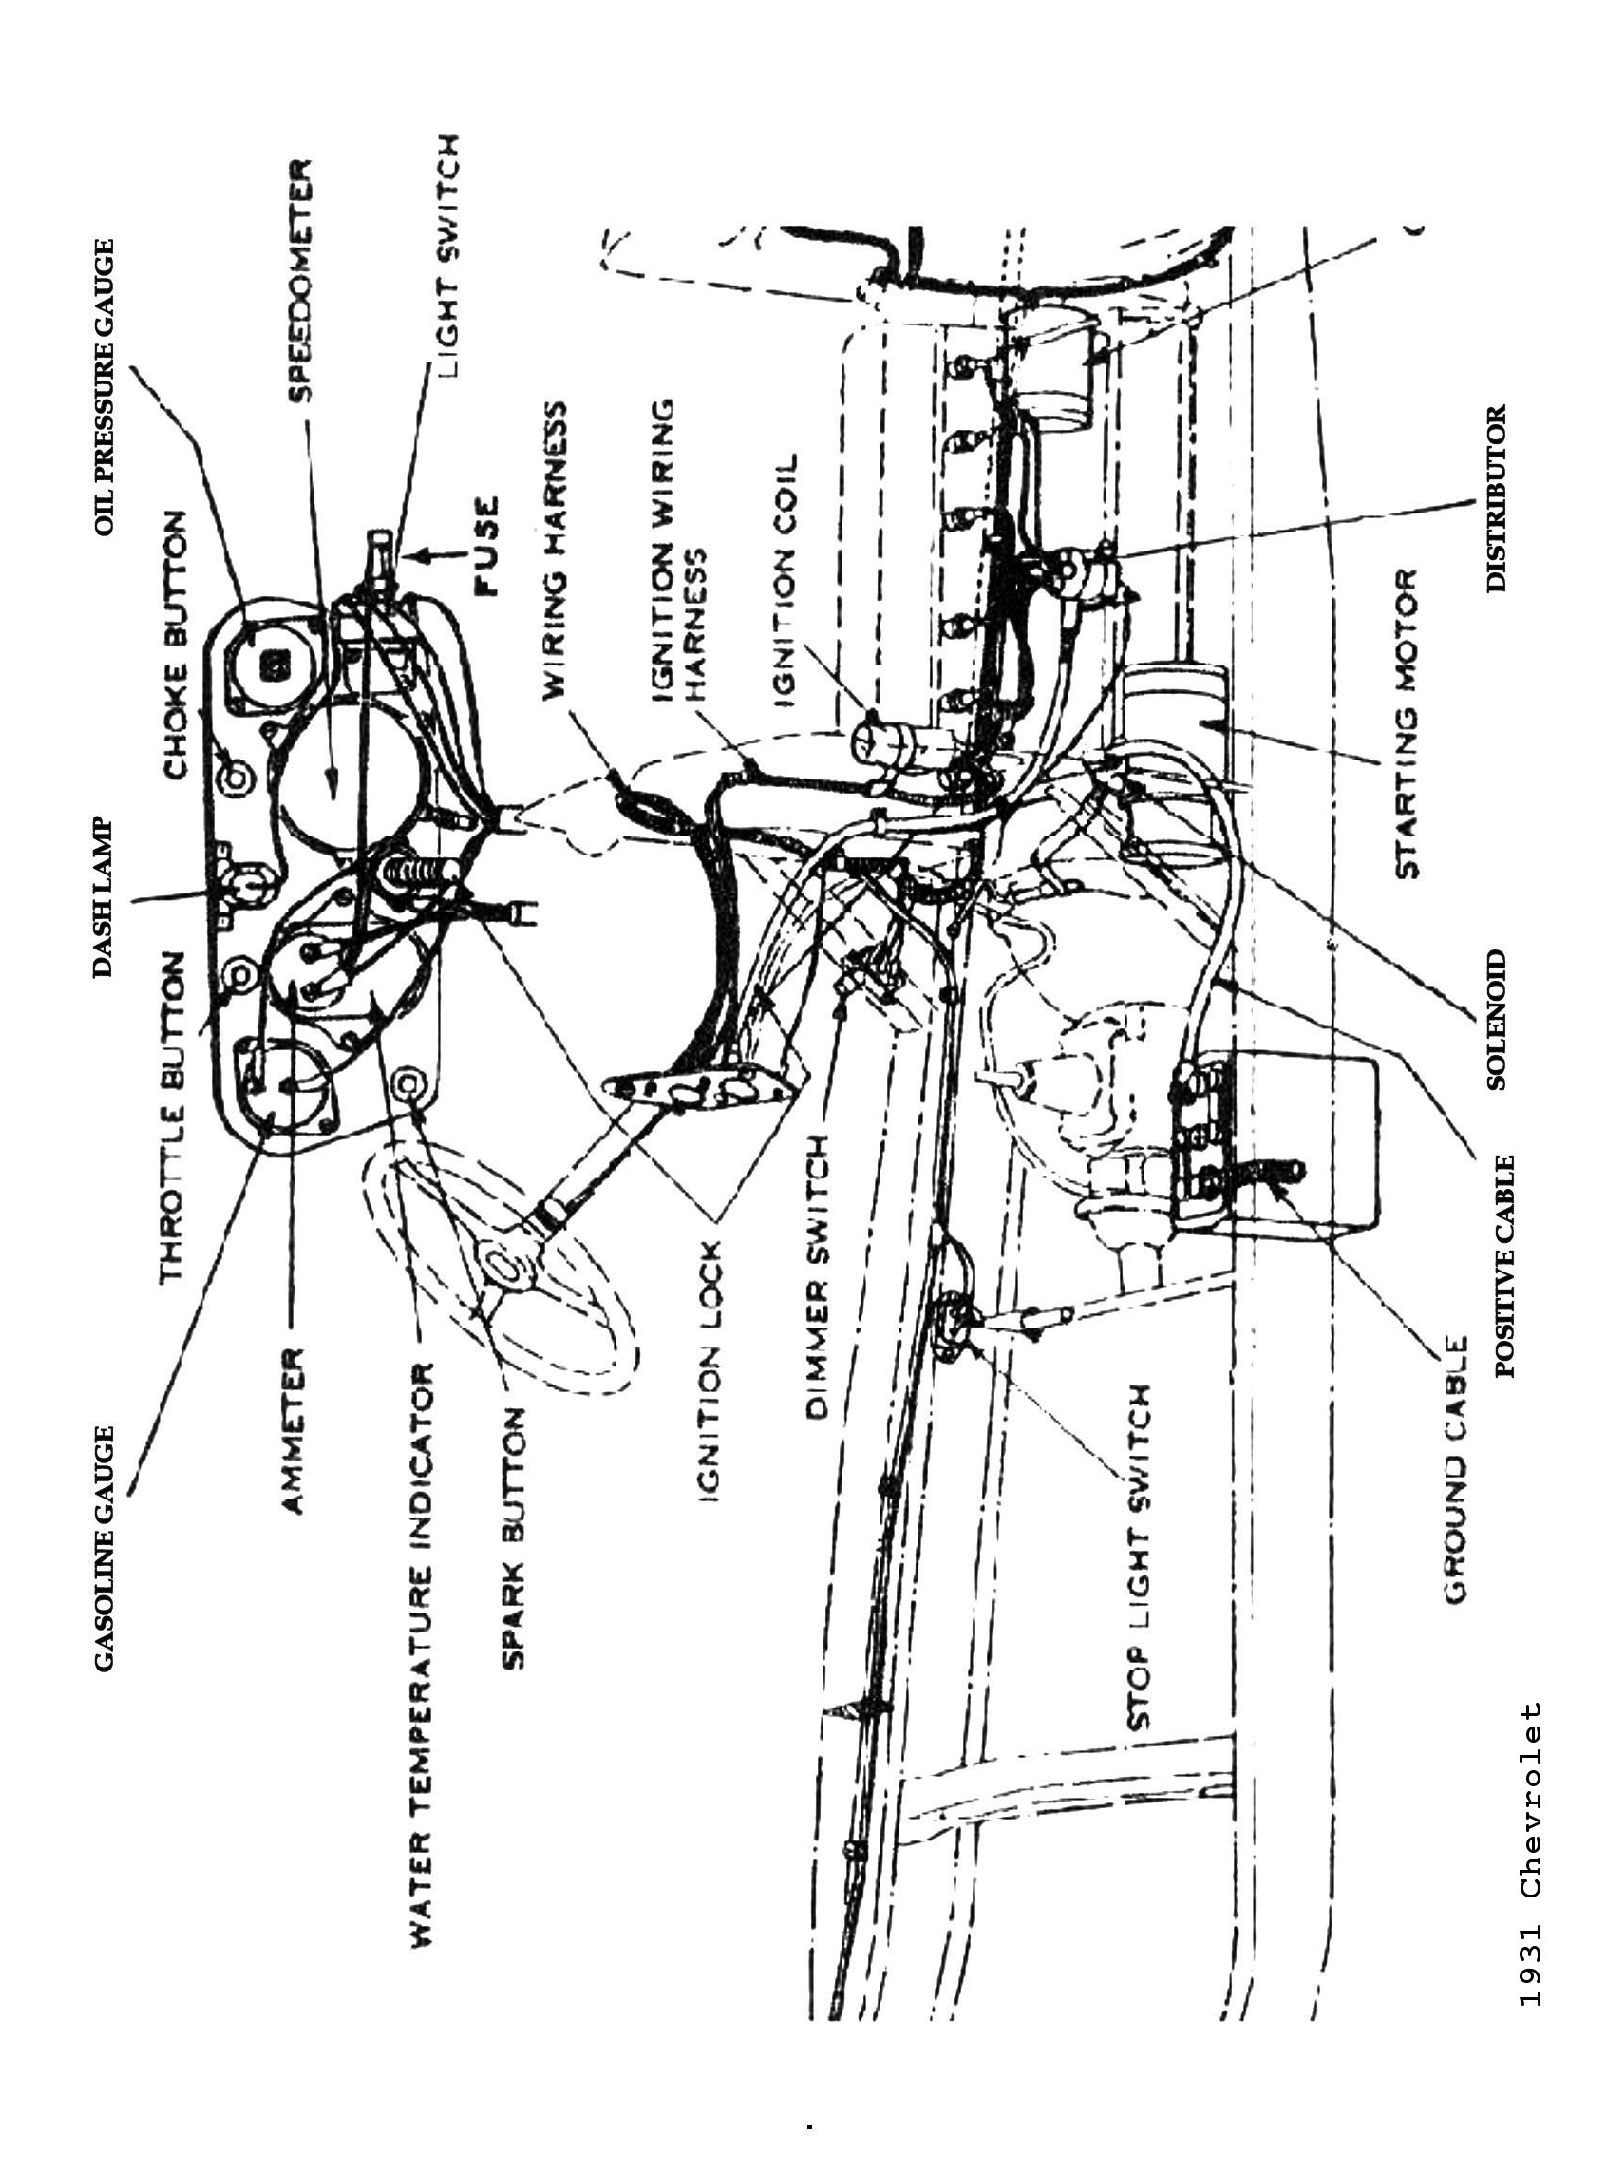 Chevy Wiring Diagrams 1951 Truck Harness Diagram 1931 Lighting Ignition